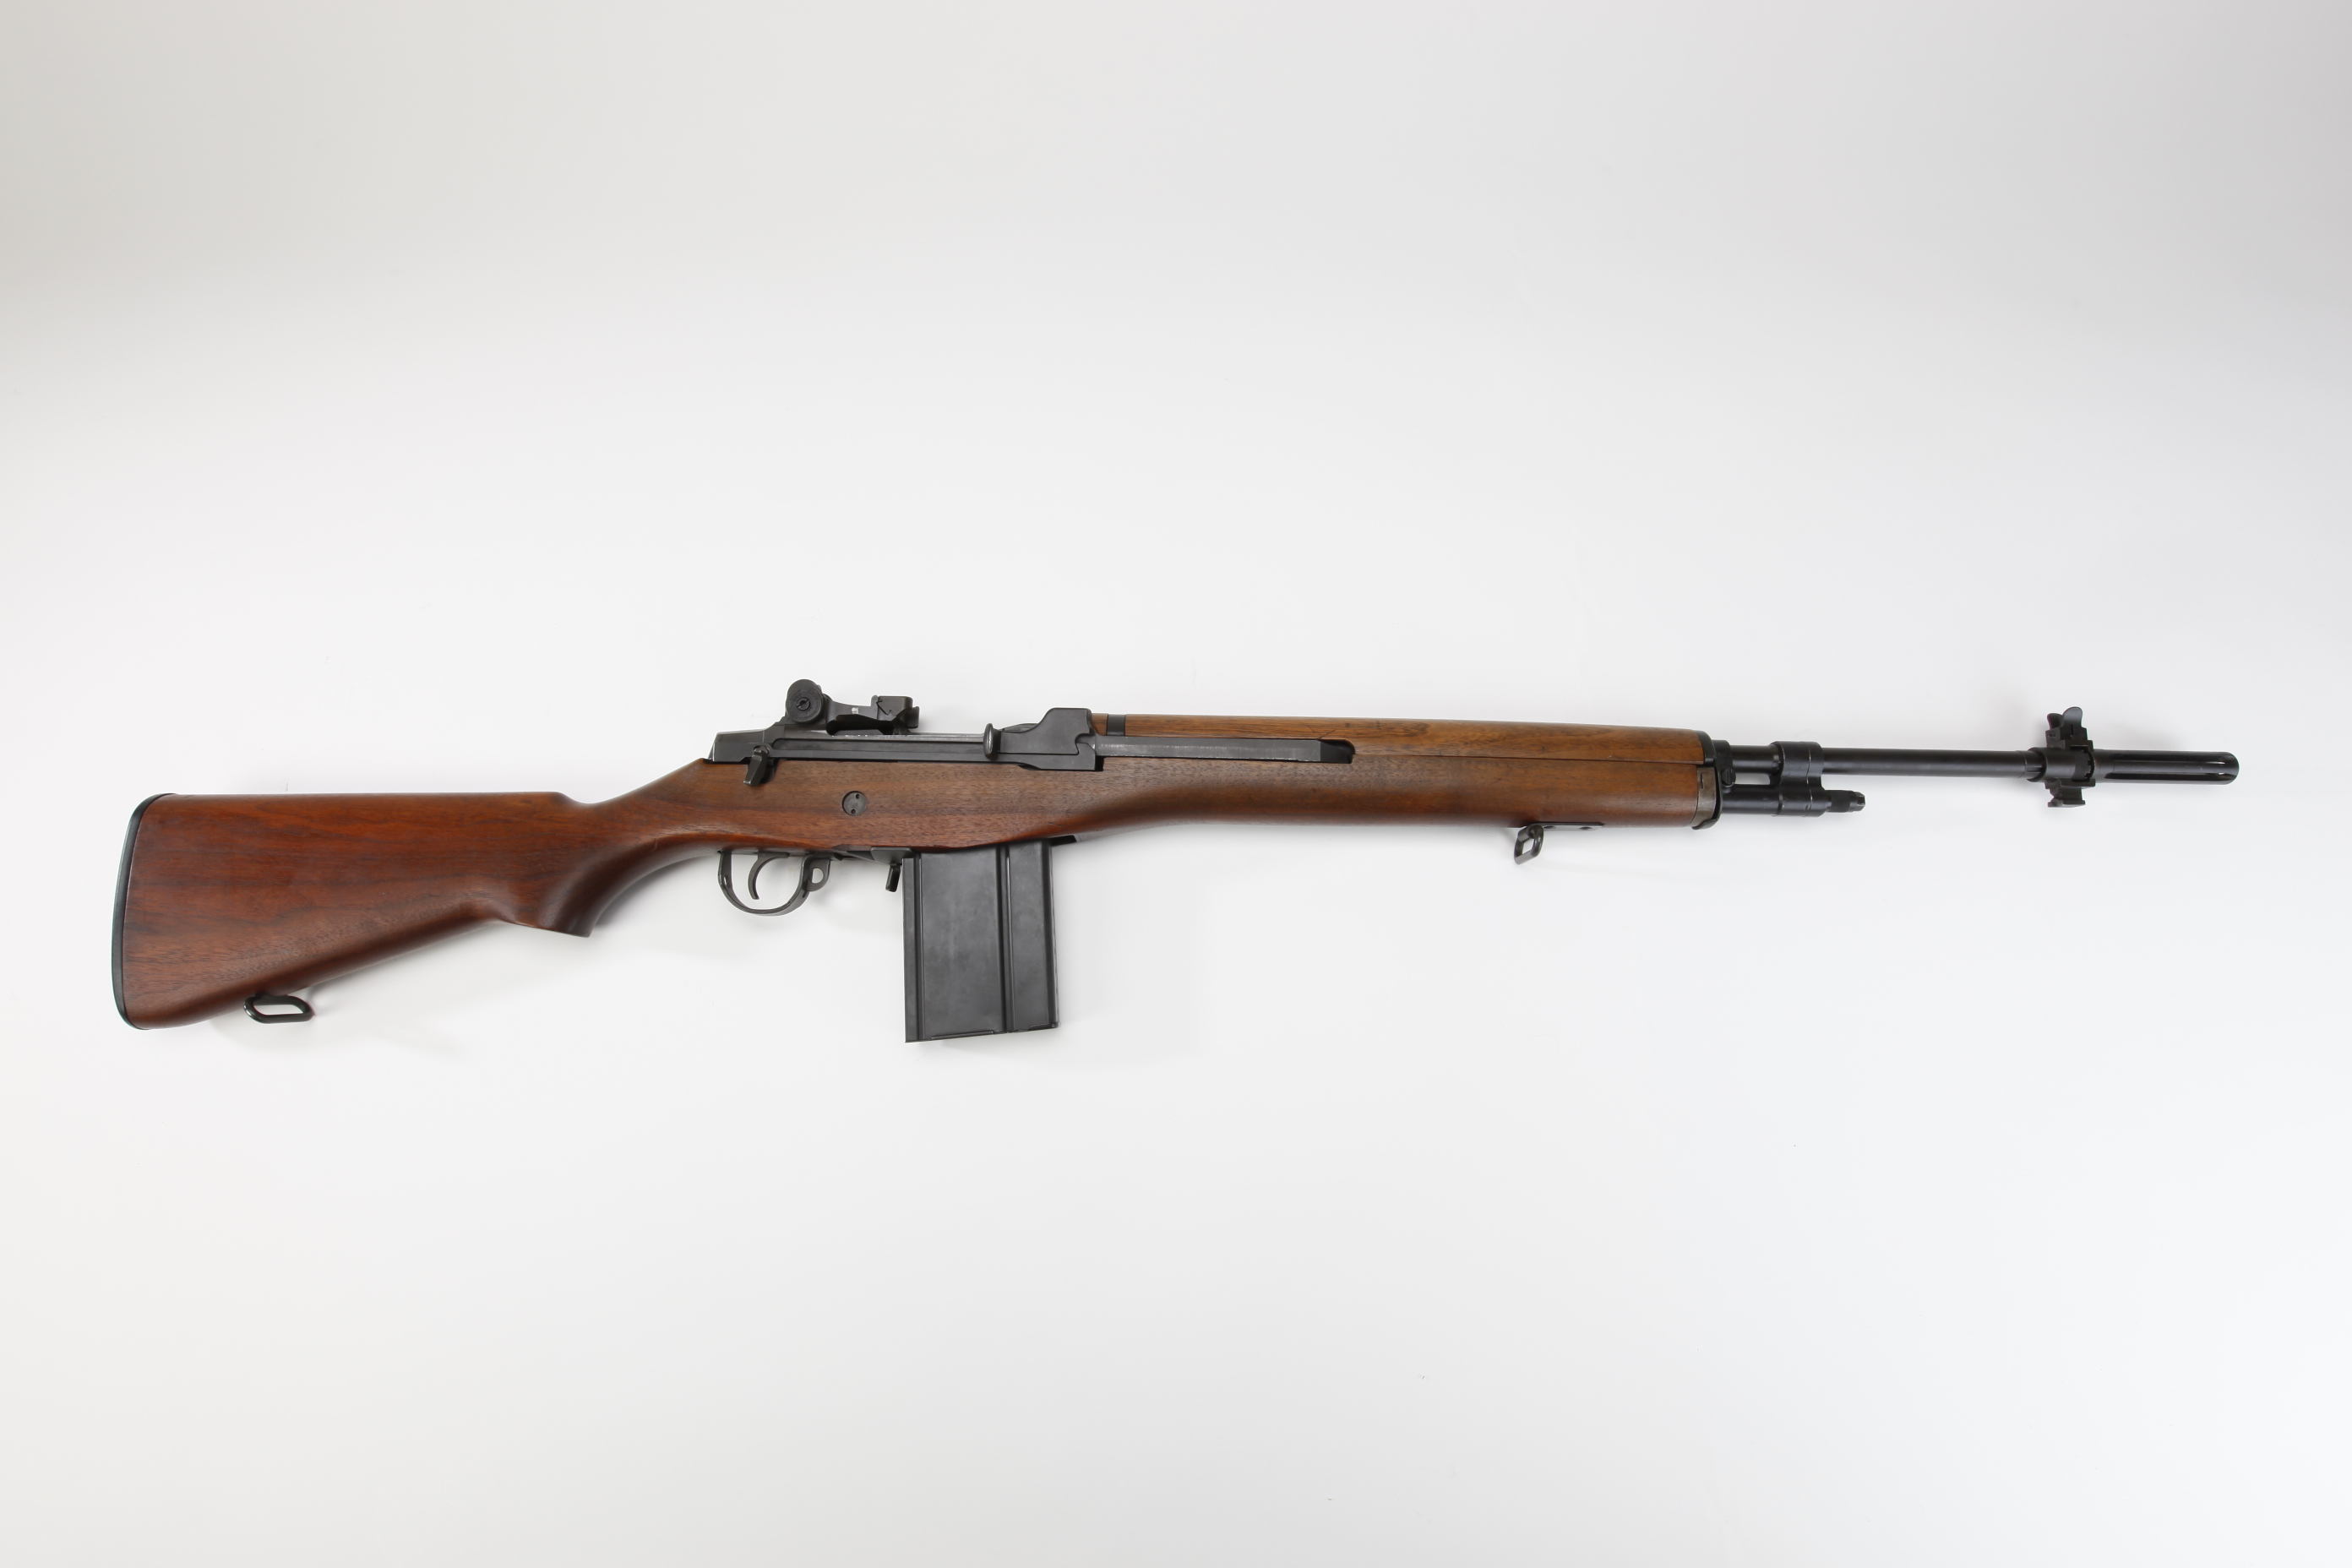 The M-14 was initially the rifle of the US military in Vietnam but by 1967 had been replaced by the M-16A1